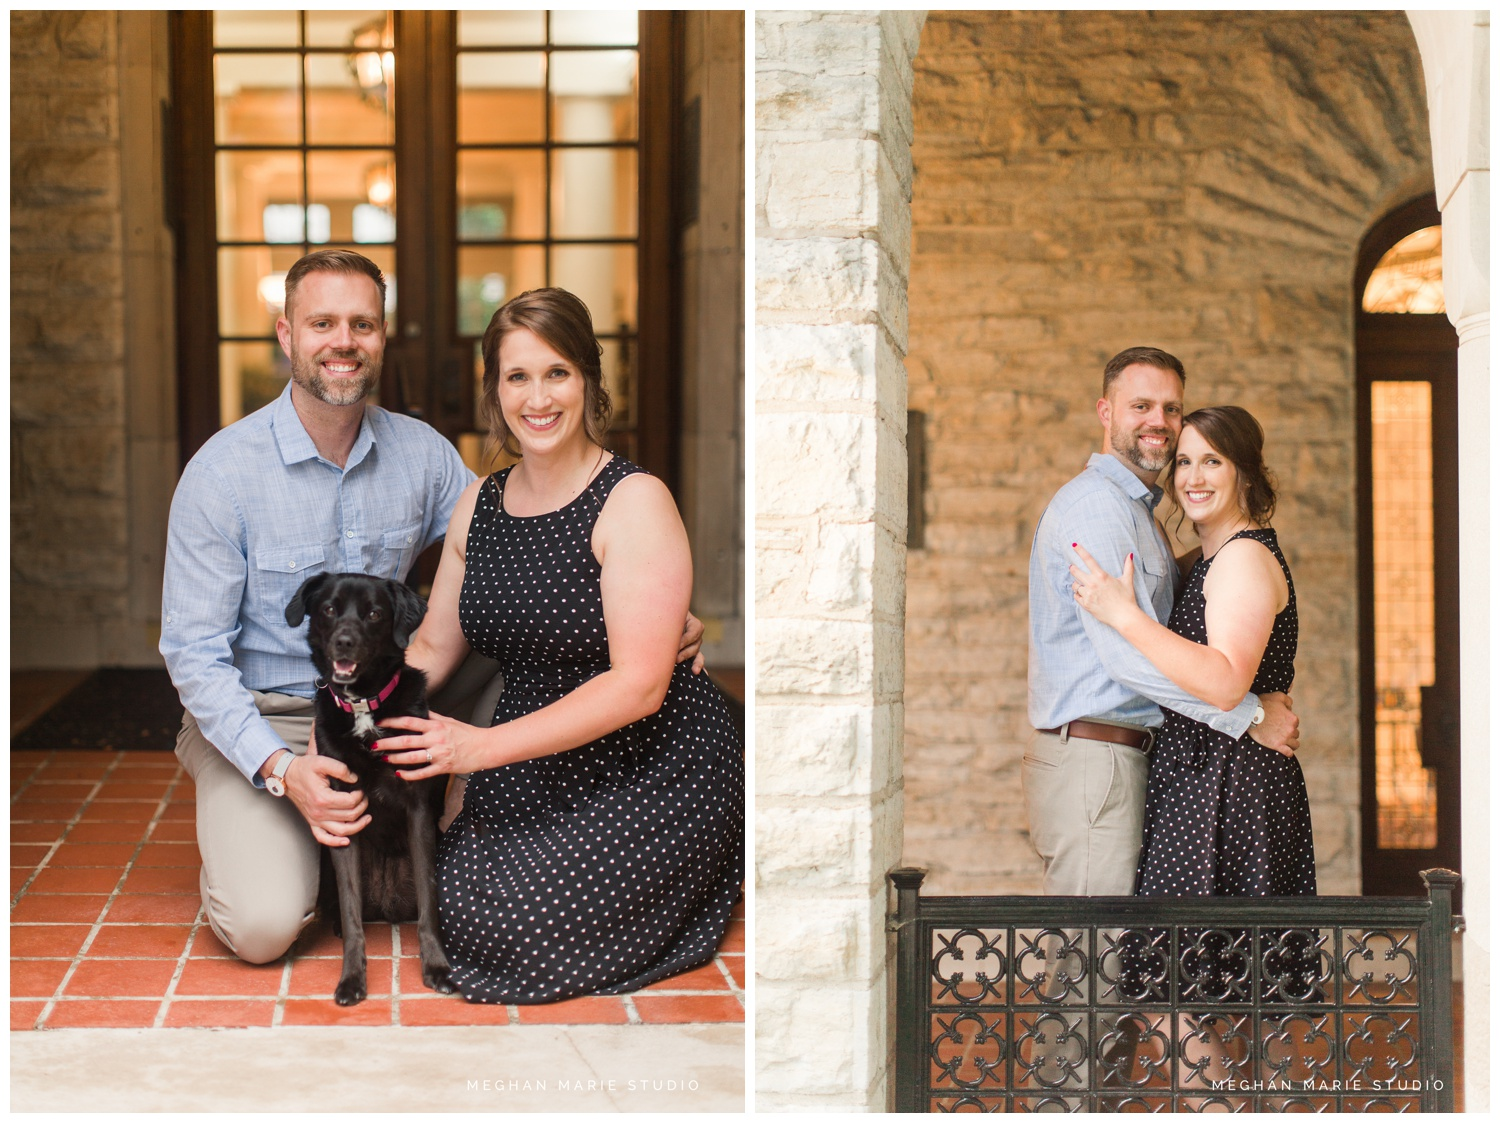 downtown-troy-urban-vintage-engagement-wedding-photography-hayner-cultural-center-meghan-marie-studio_0163.jpg